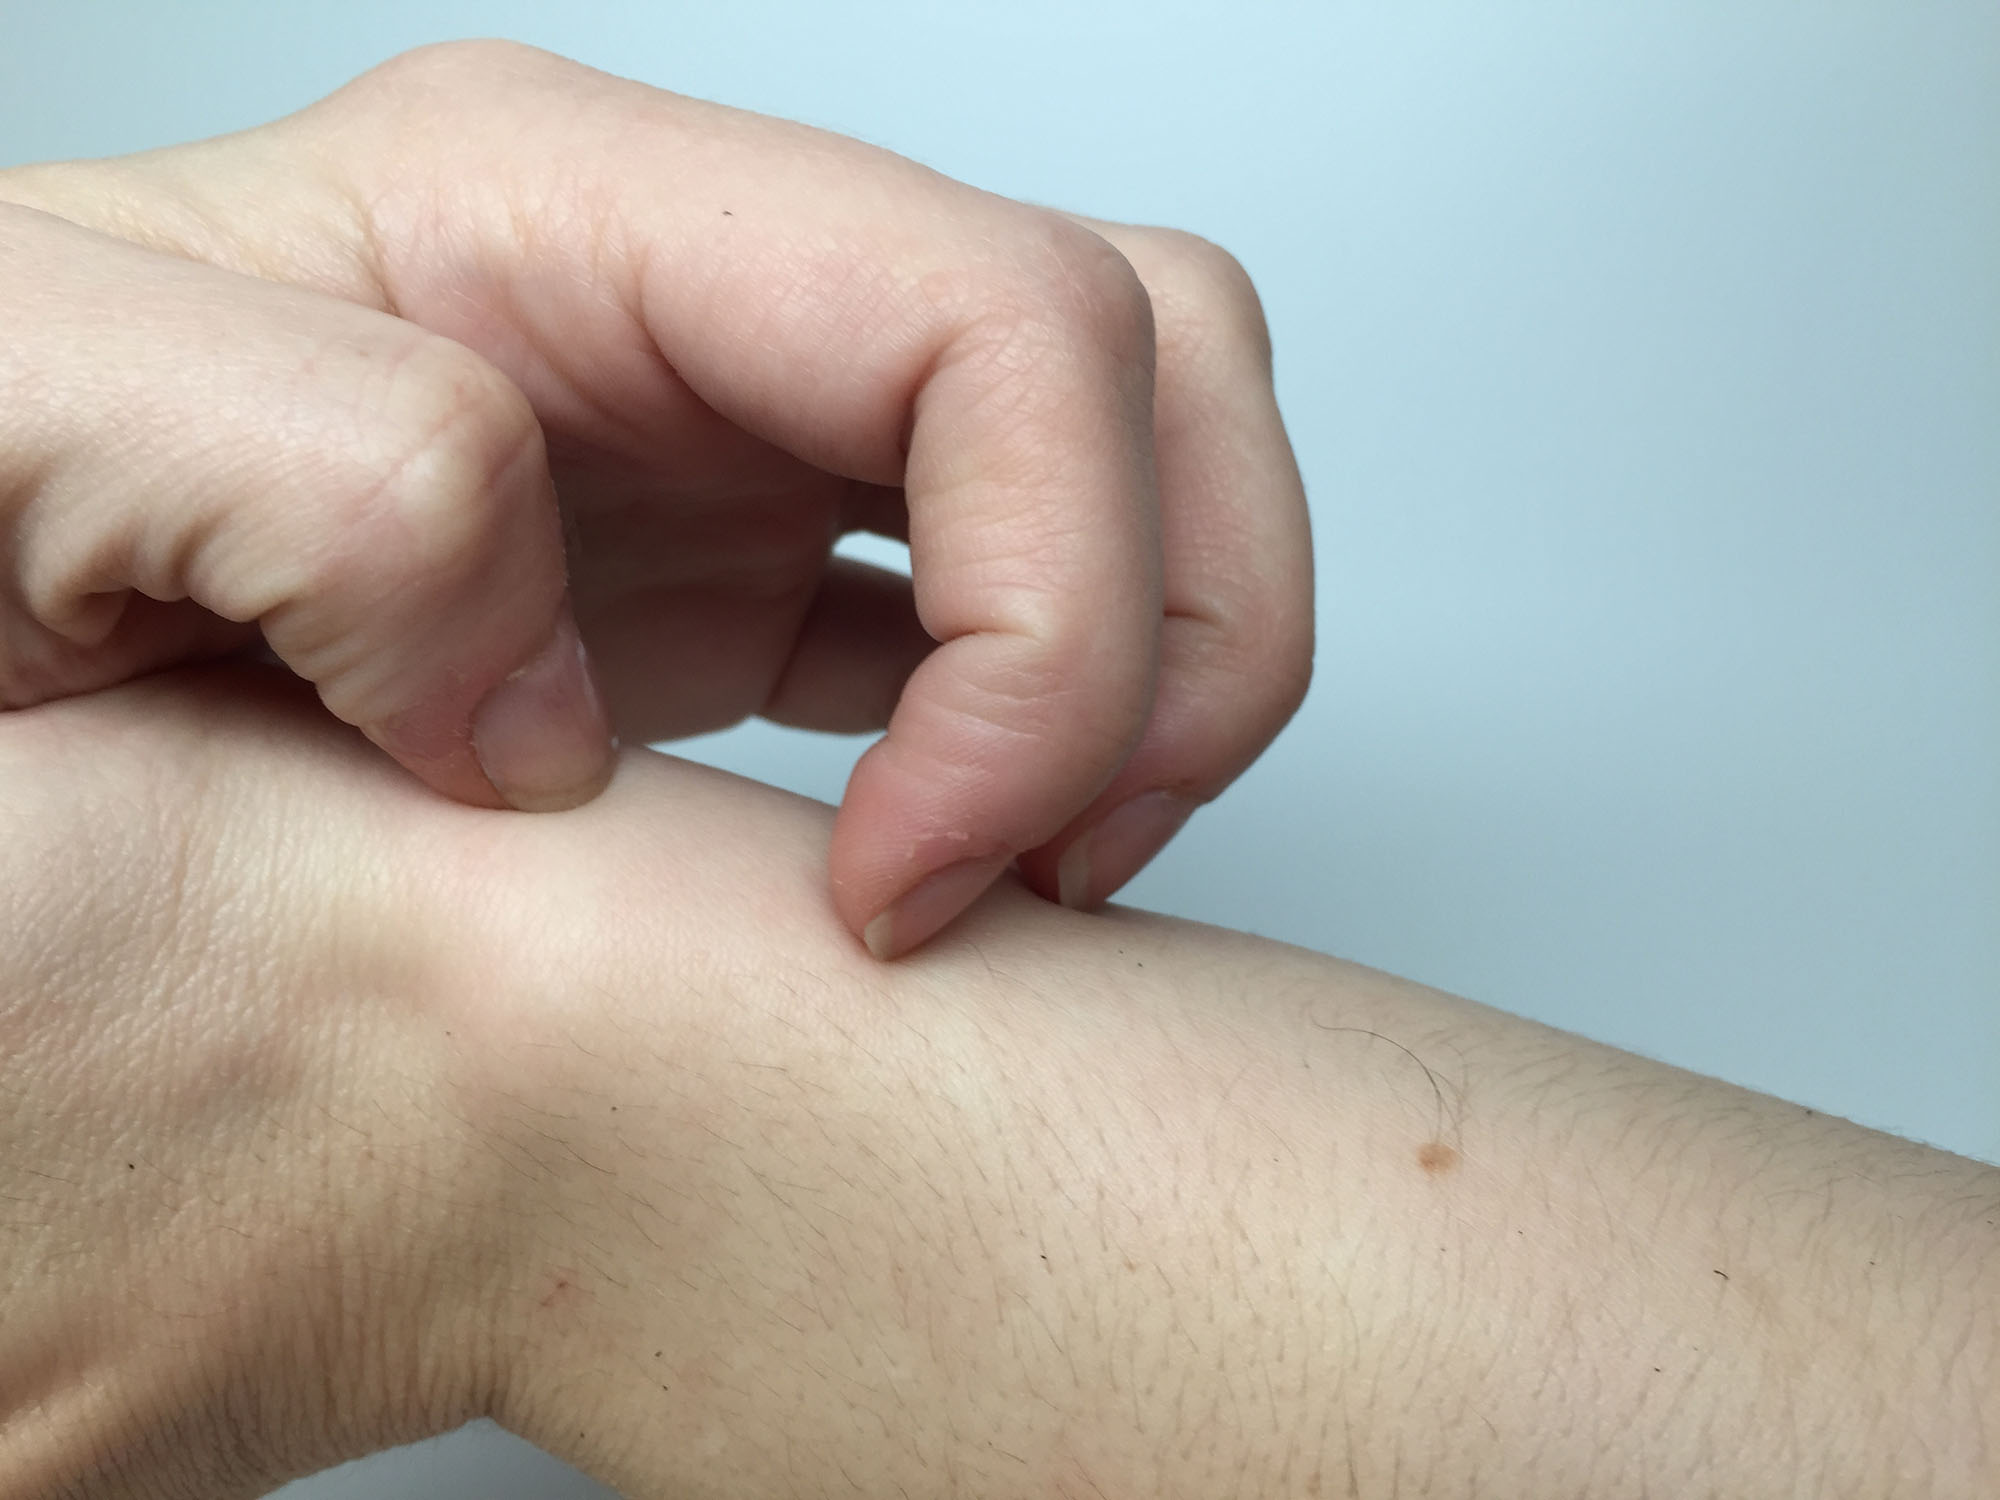 Scratching the skin primes the gut for allergic reactions to food, mouse study suggests